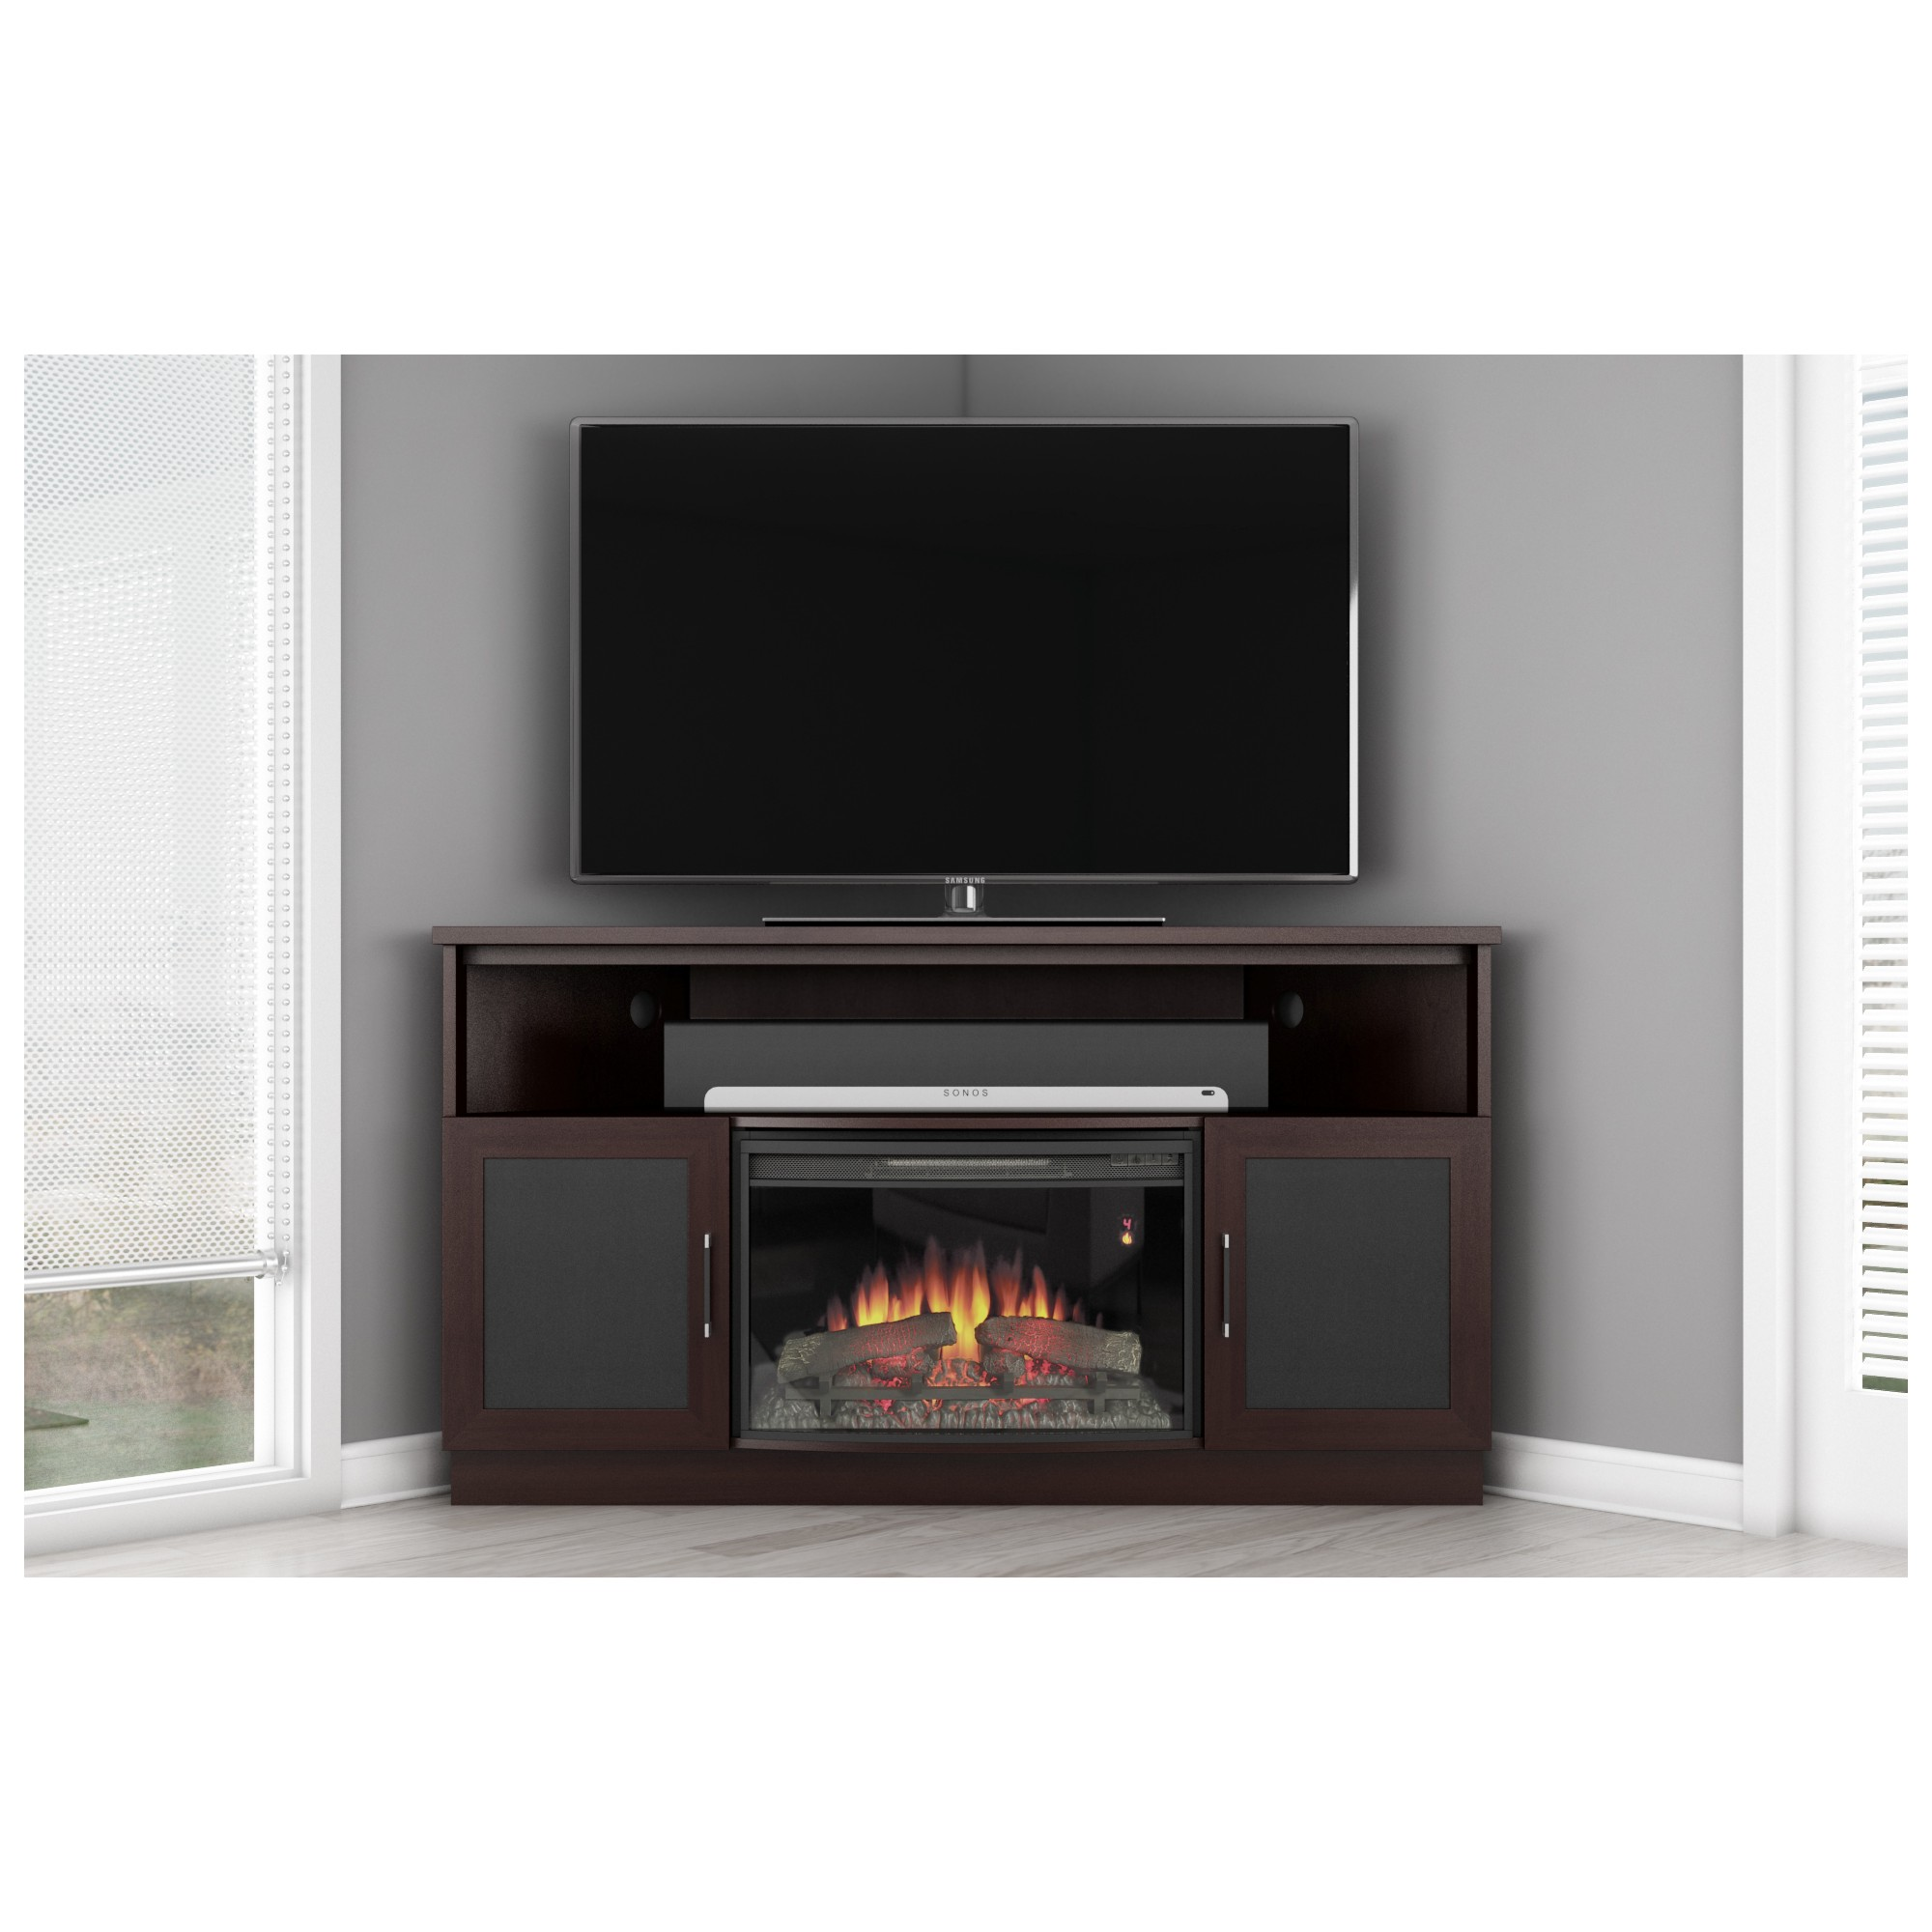 Furnitech FT60CCCFB 60 Inch TV Stand Contemporary Corner w/ Electric Fireplace Wenge Furnitech-FT60CCCFB